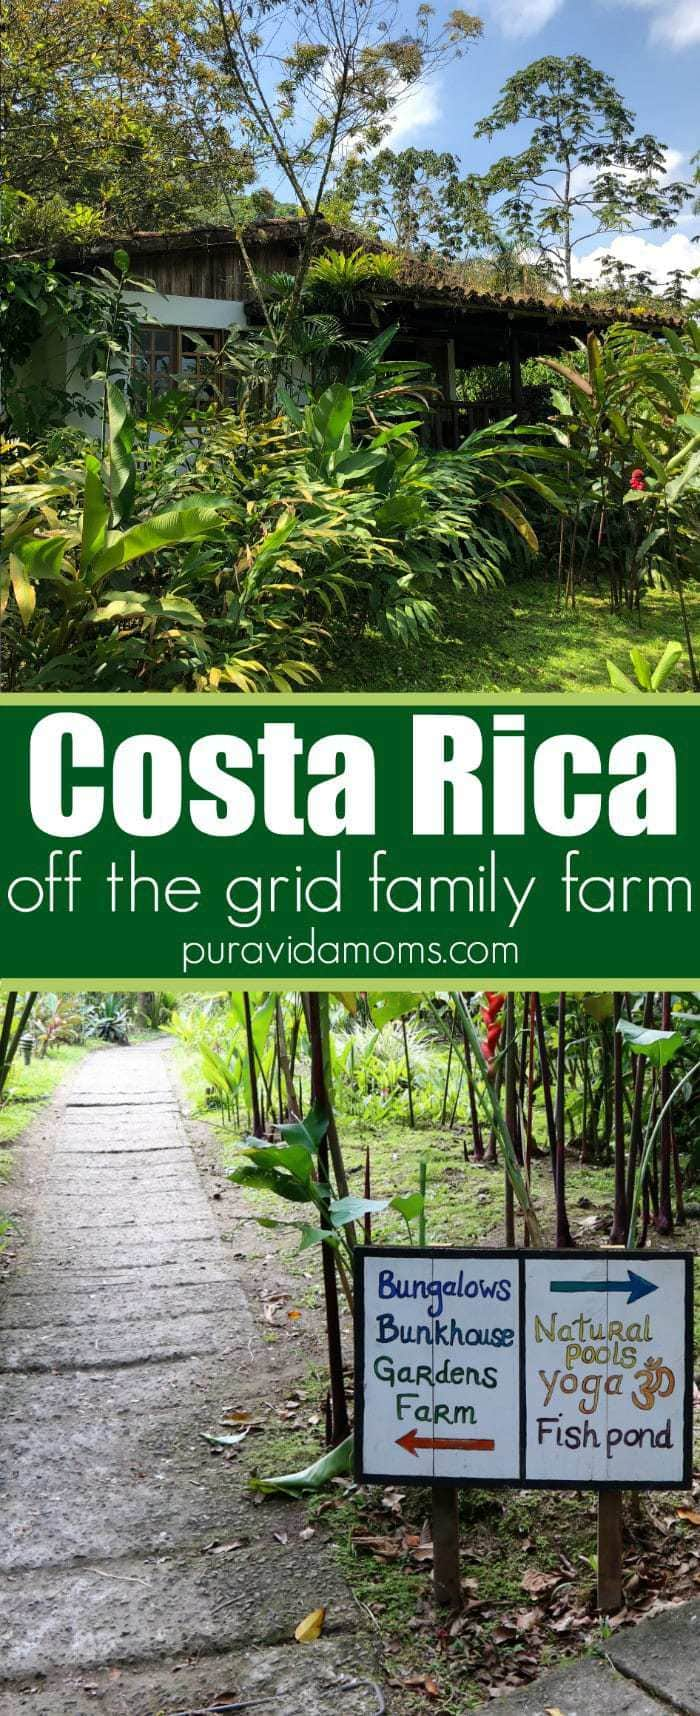 Rancho Margot Costa Rica For Families